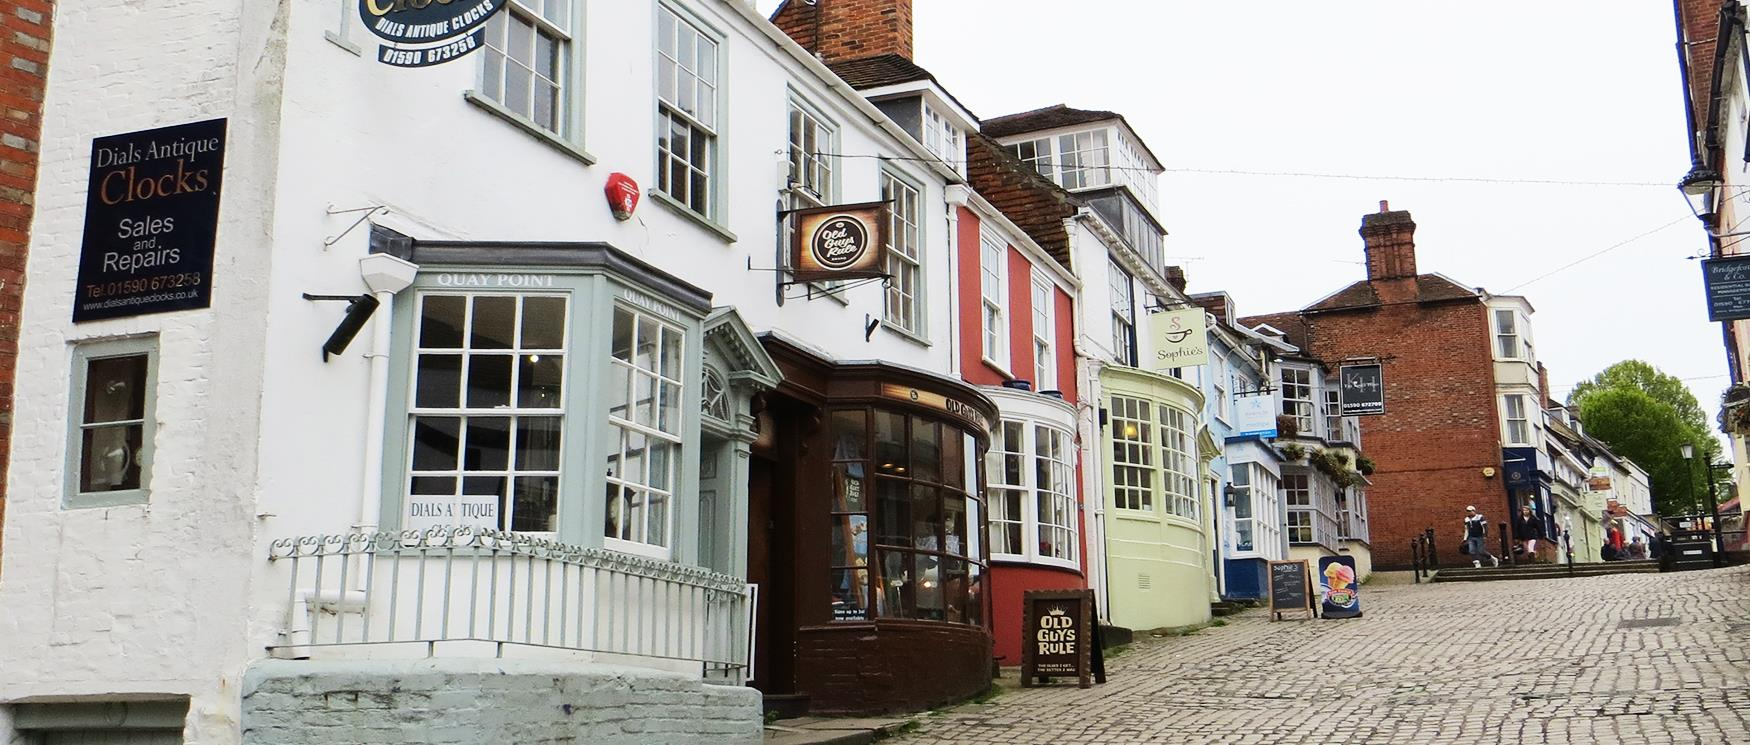 The Coastal Town of Lymington in the New Forest